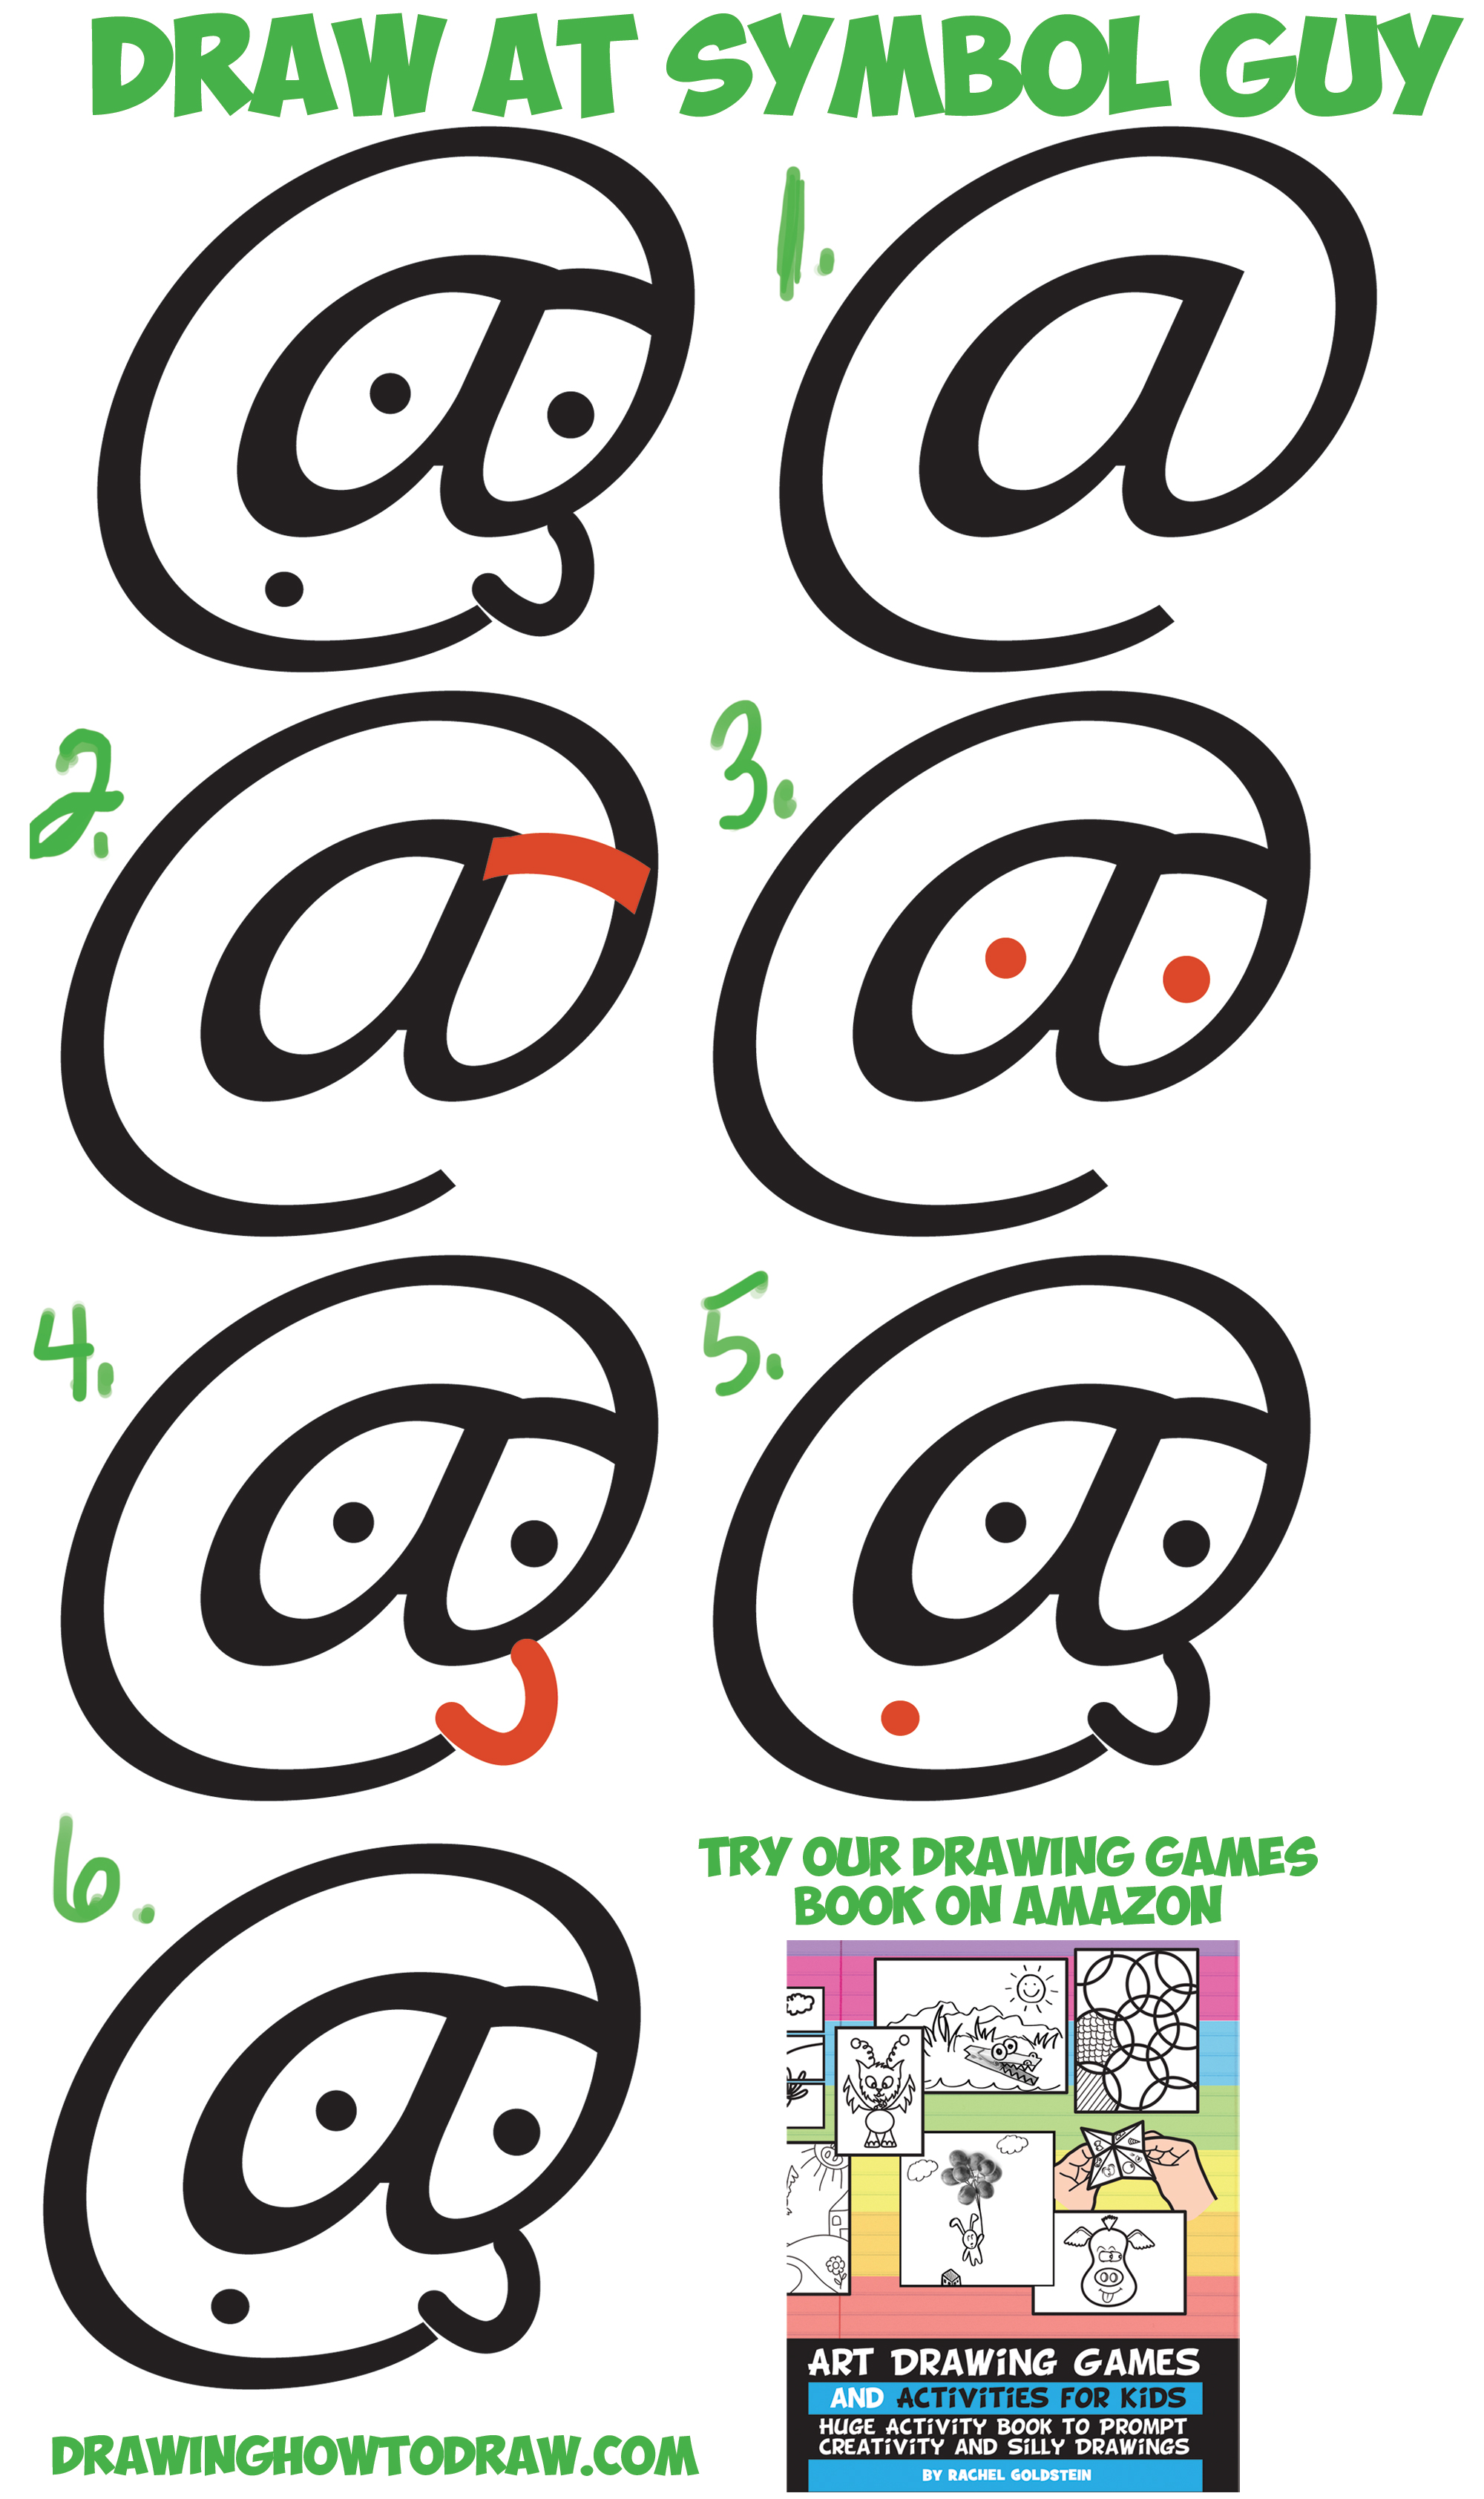 How to Draw Cartoon Guy's Face from At Symbol Easy Step by Step Drawing Tutorial for Kids